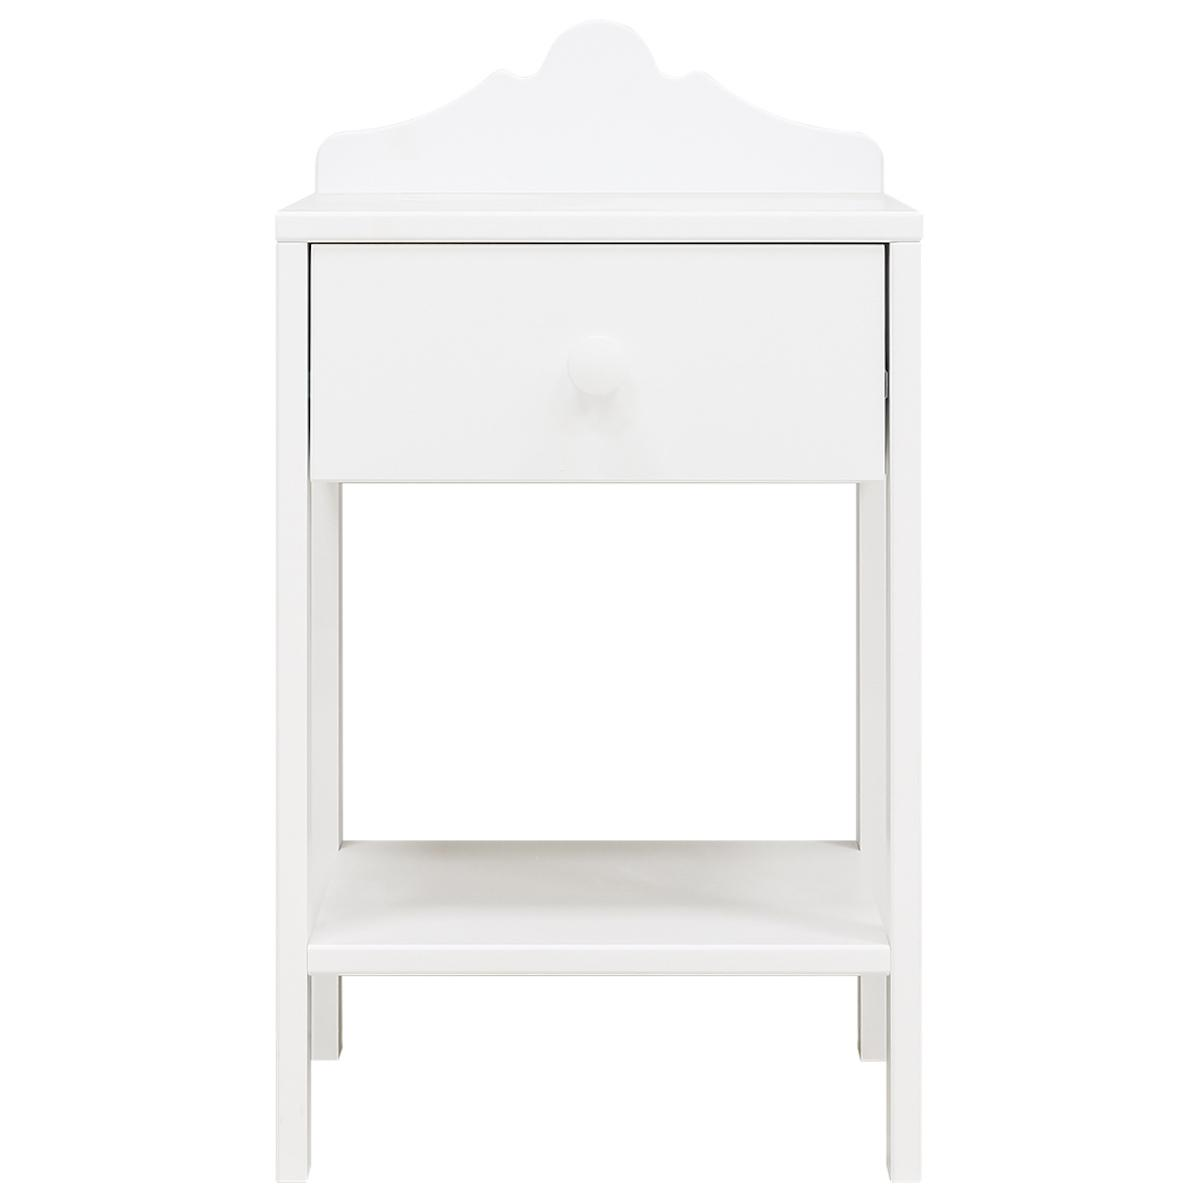 Table de nuit EVI Bopita blanc